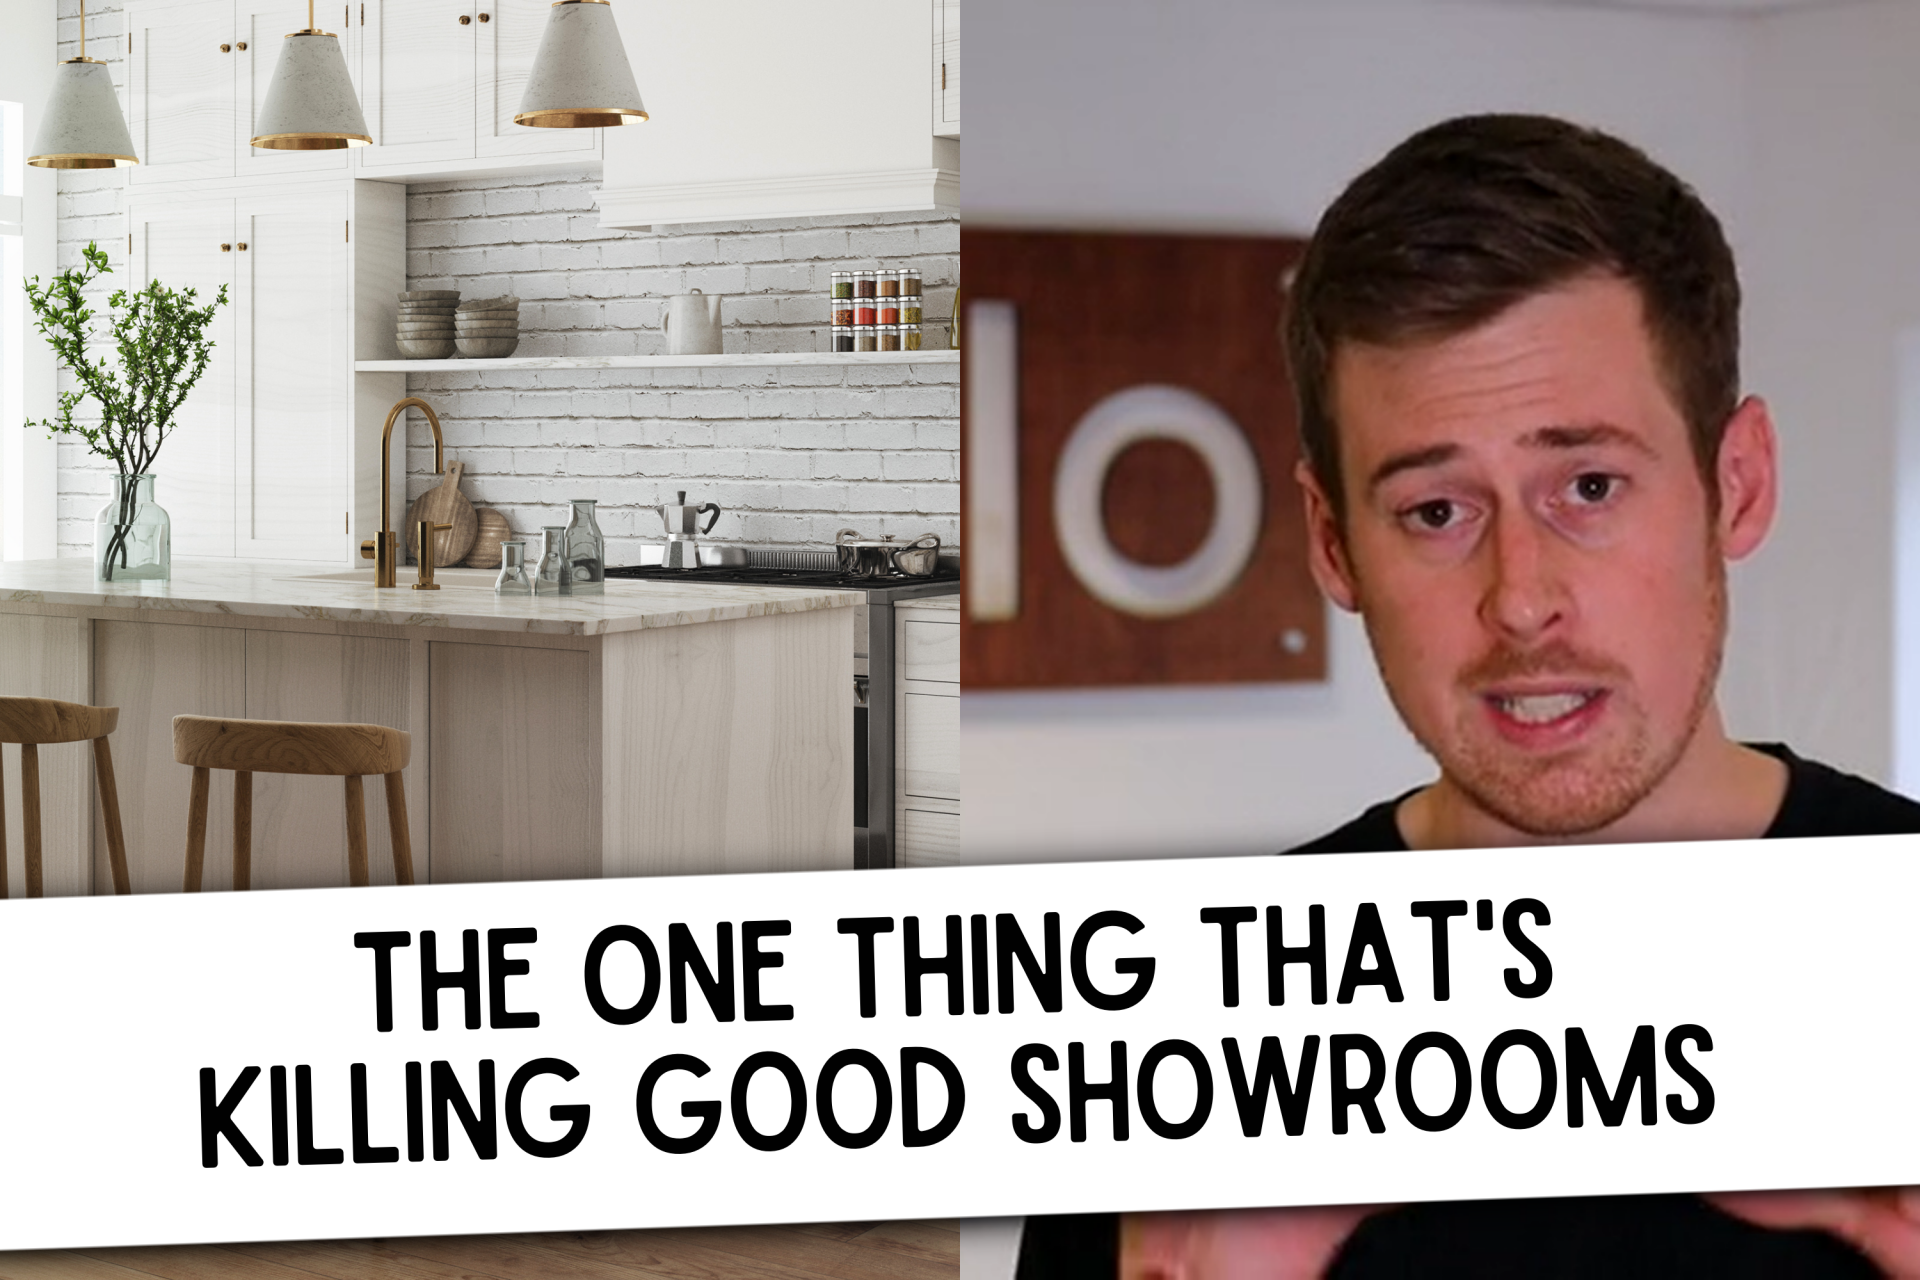 One thing killing kitchen showrooms